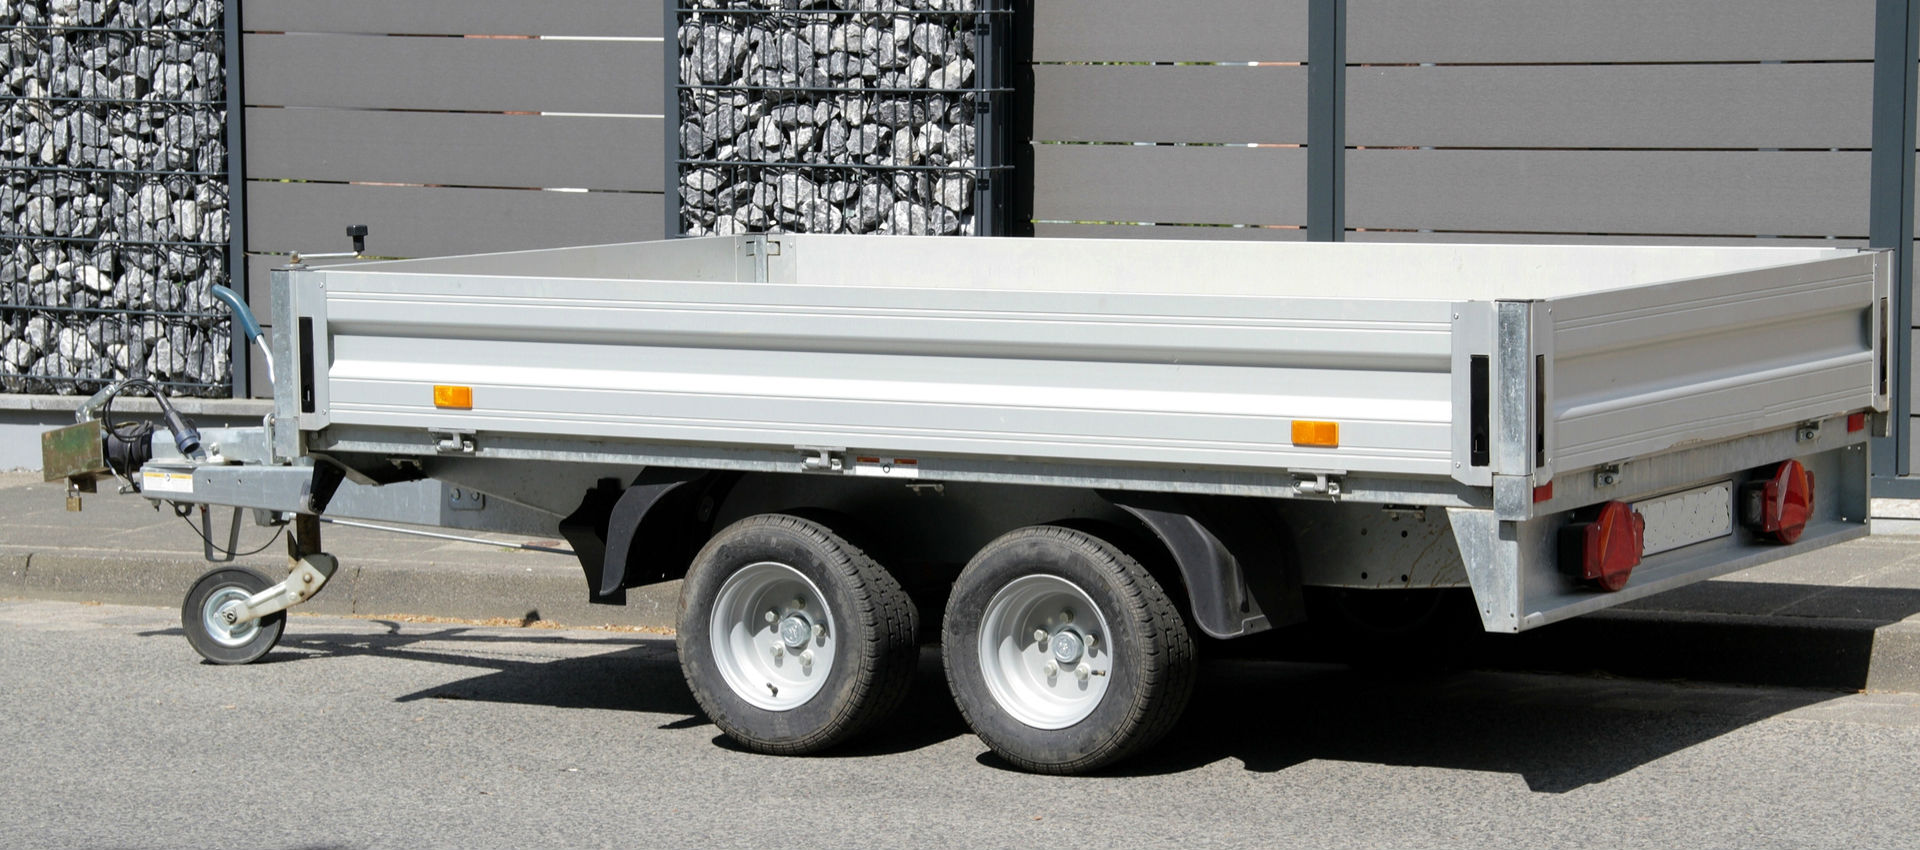 Trailer Hire in Blackpool & Lancashire